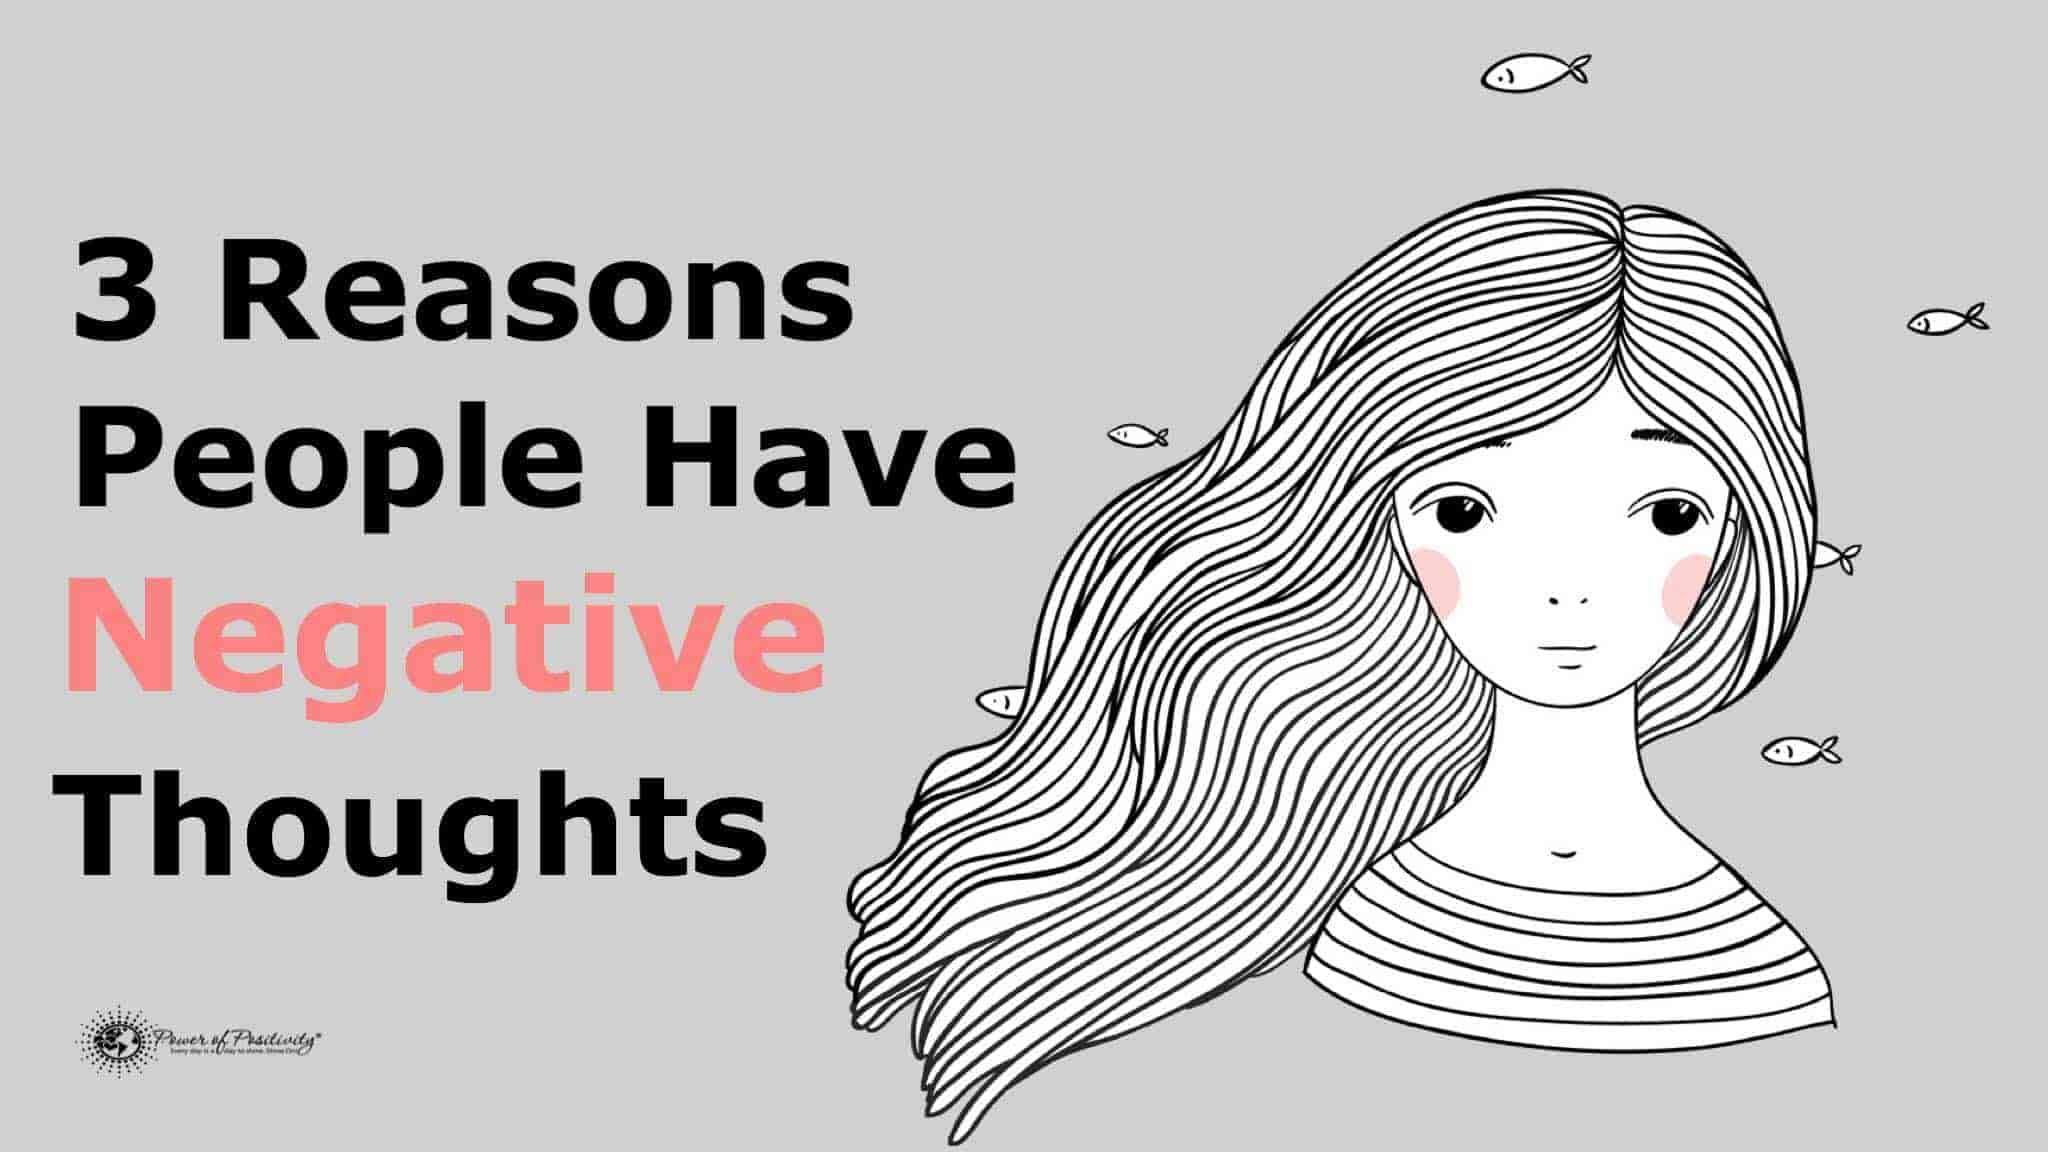 3 Reasons People Have Negative Thoughts